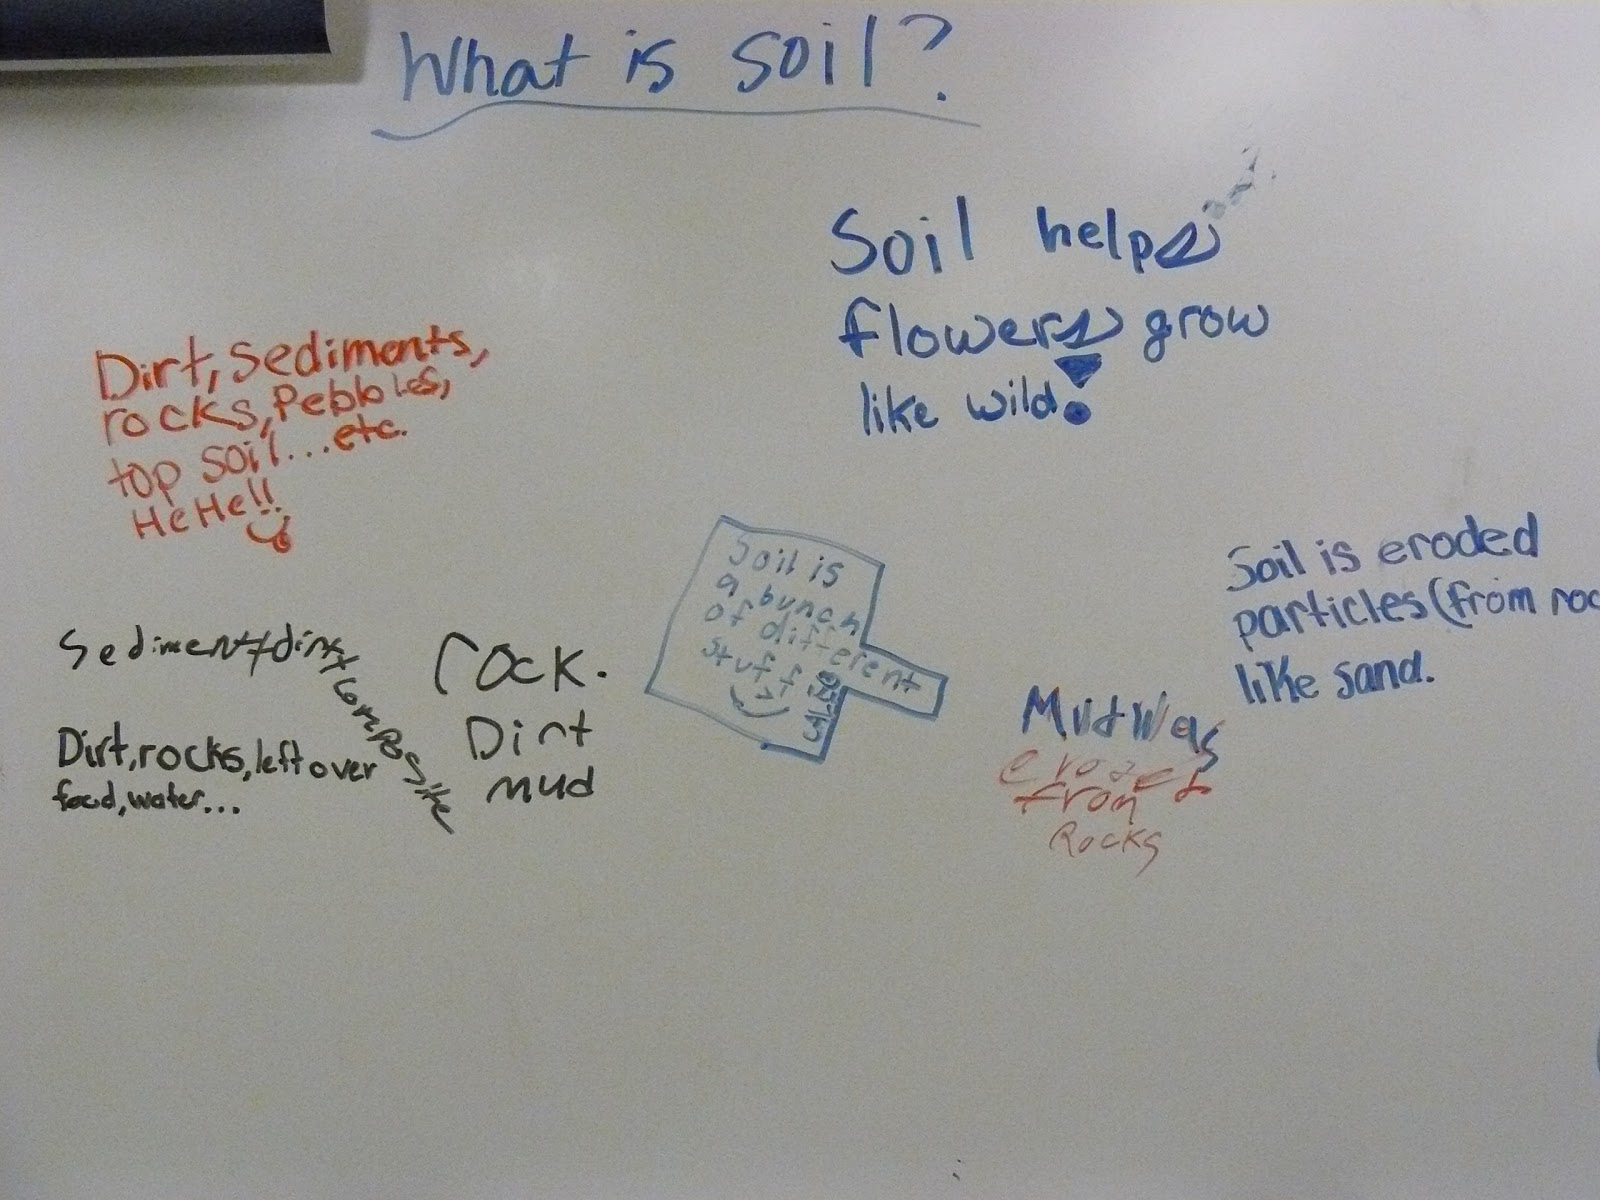 Laura Gilchrist 6th Grade Science Loesson Sciencepun Studentcentered Scichat Science Soil